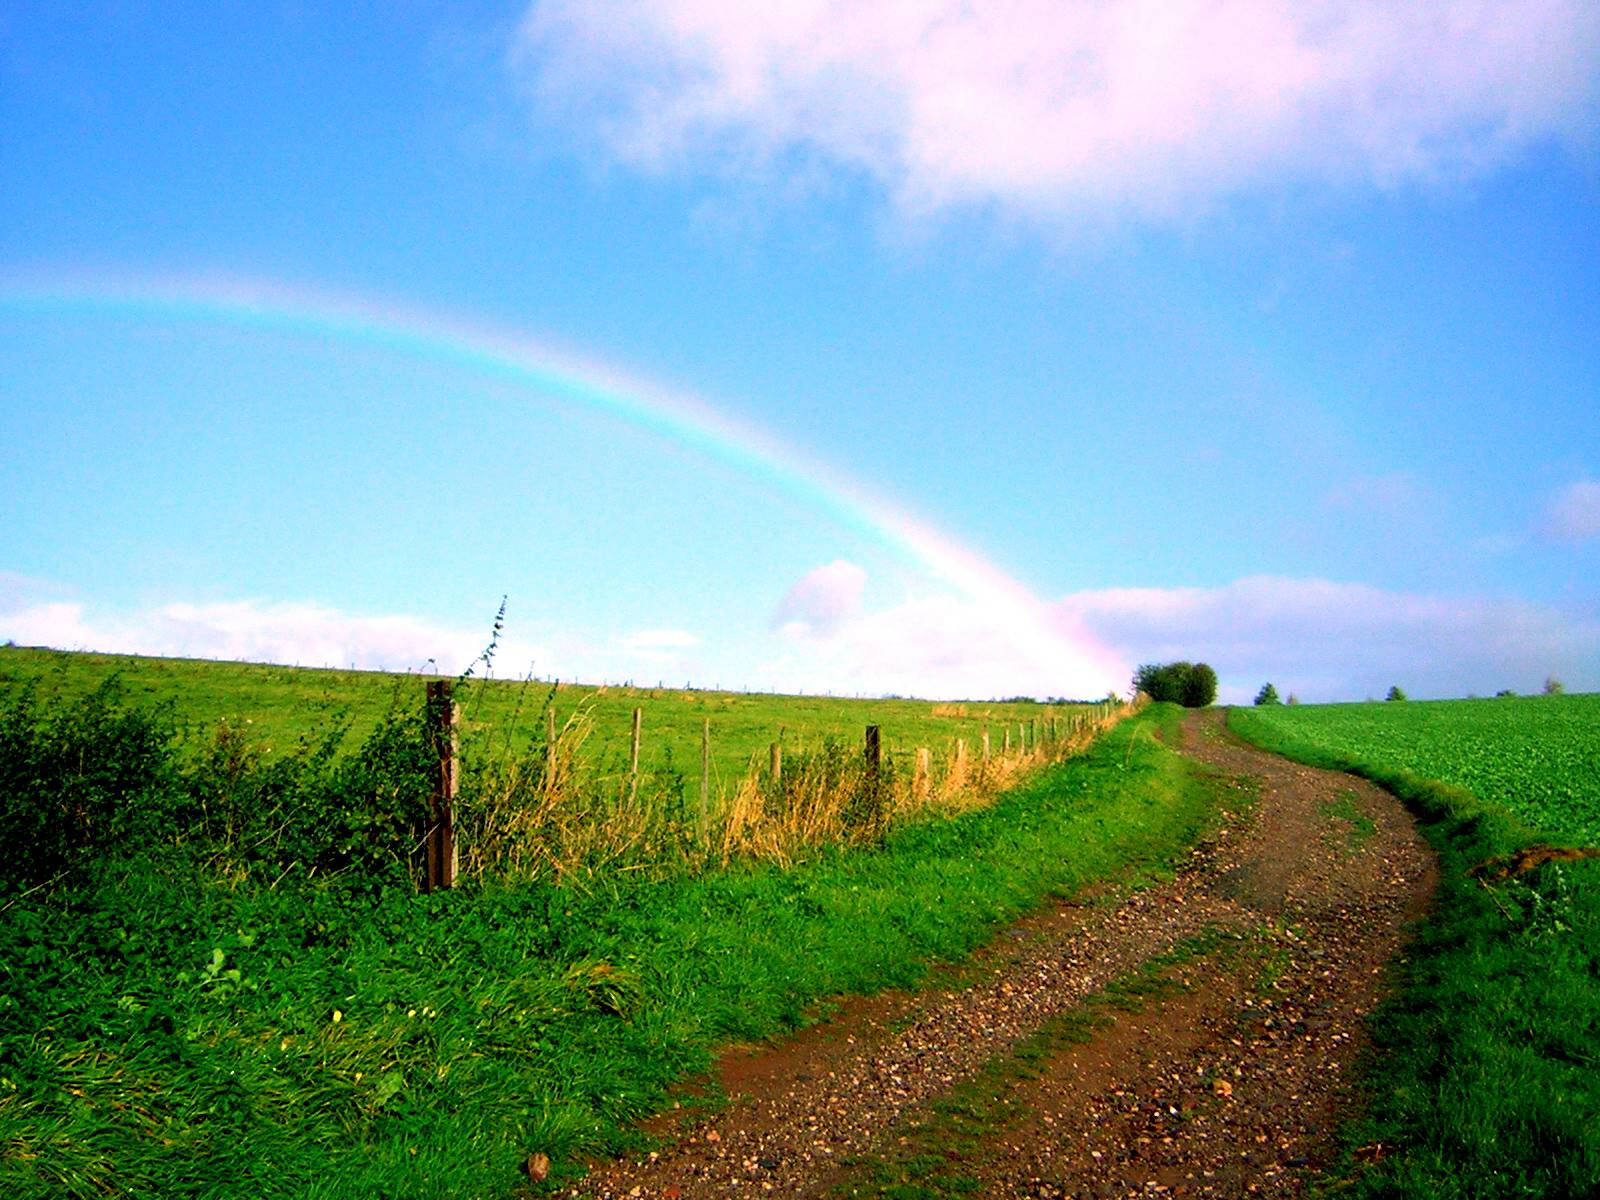 Landscape_with_rainbow_on_the_road_between_Heimbach_and_Nideggen